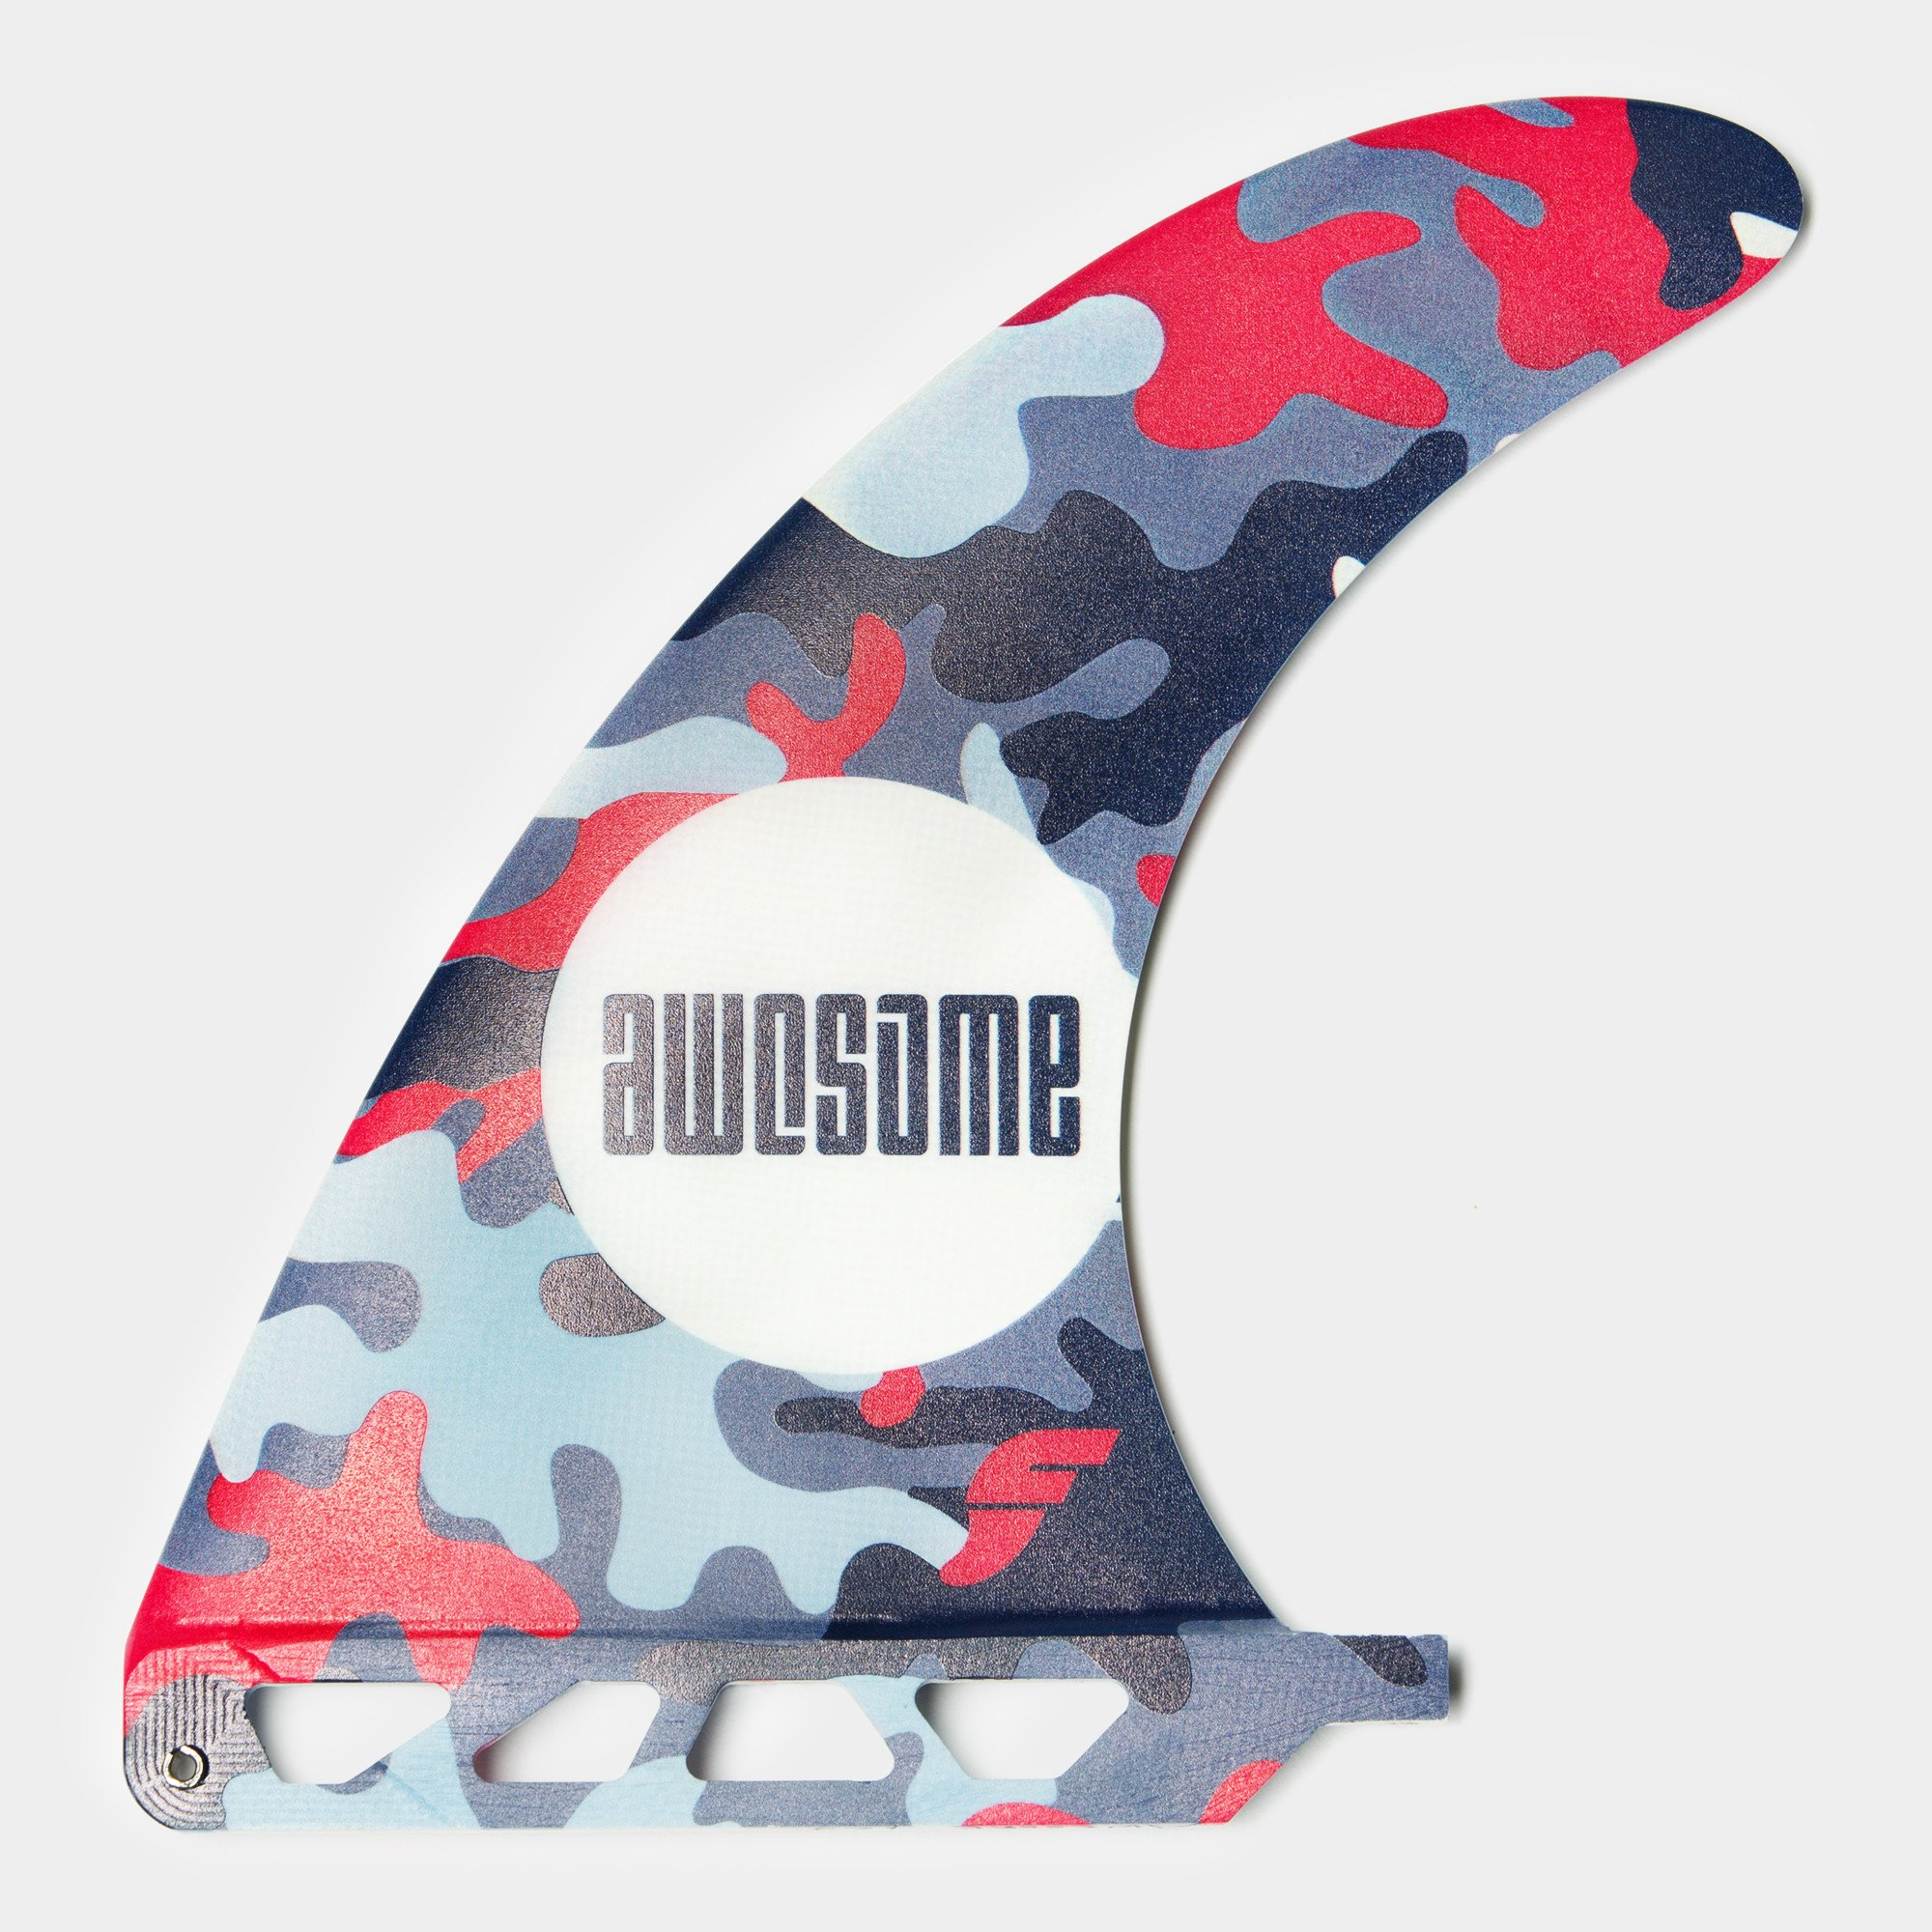 "Awesome 7.25"" Single Fin Camo"